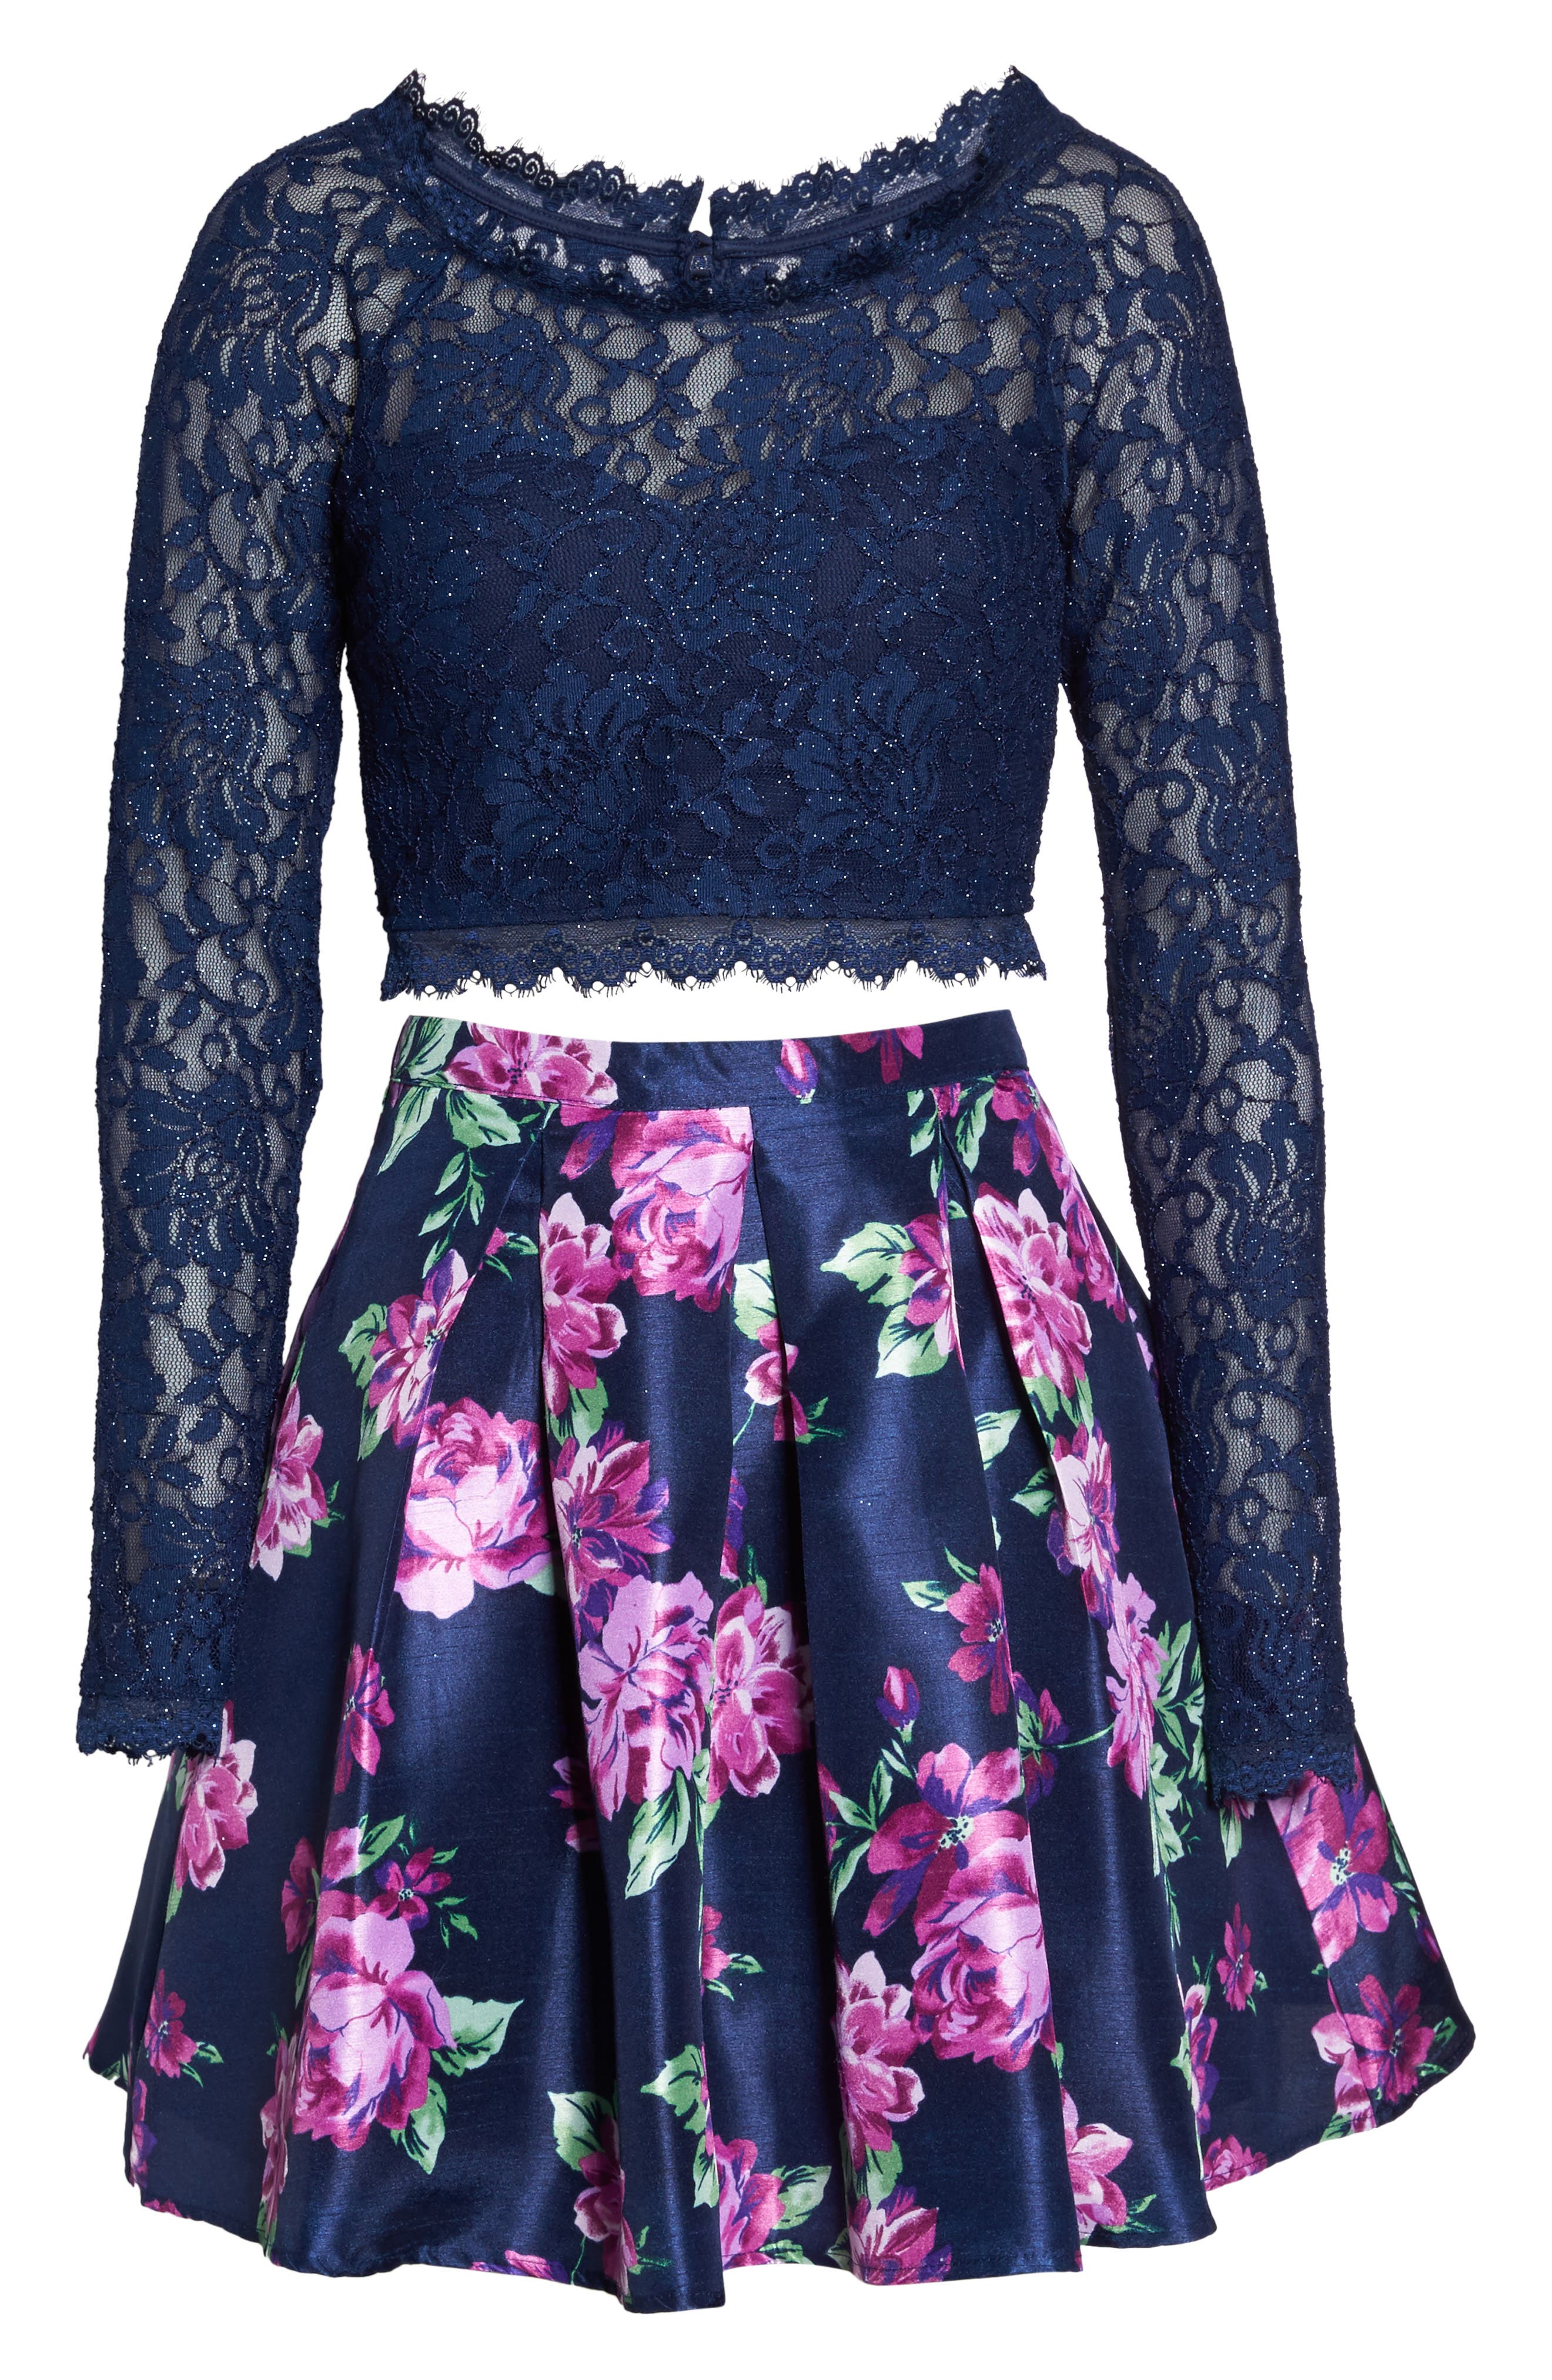 Glitter Lace Two-Piece Dress,                             Alternate thumbnail 6, color,                             Navy/ Violet